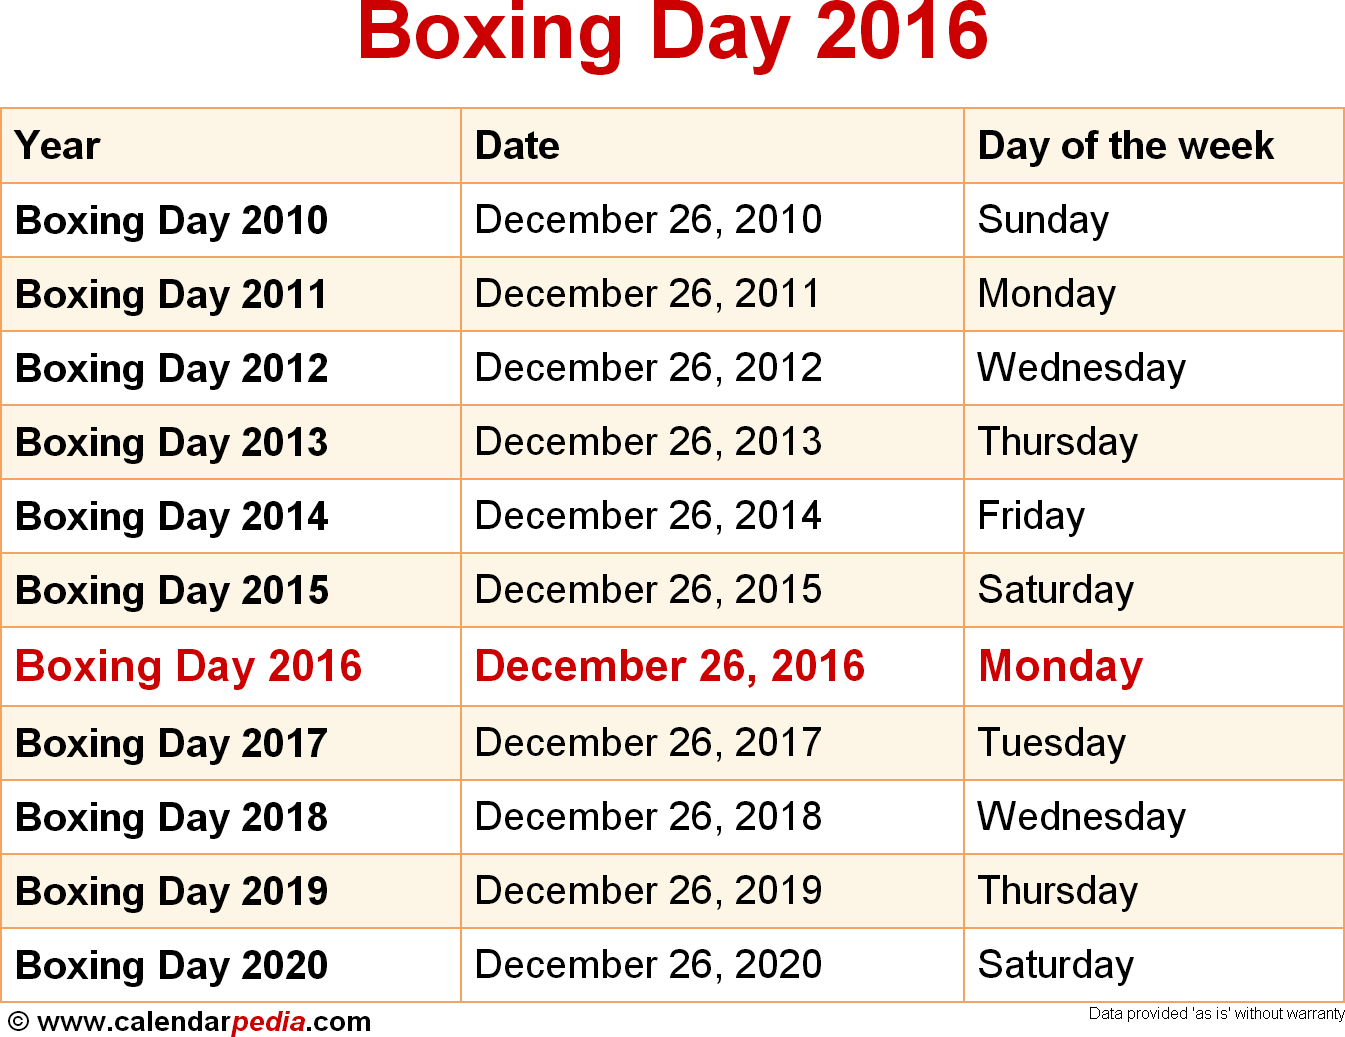 When is Boxing Day 2016 & 2017? Dates of Boxing Day